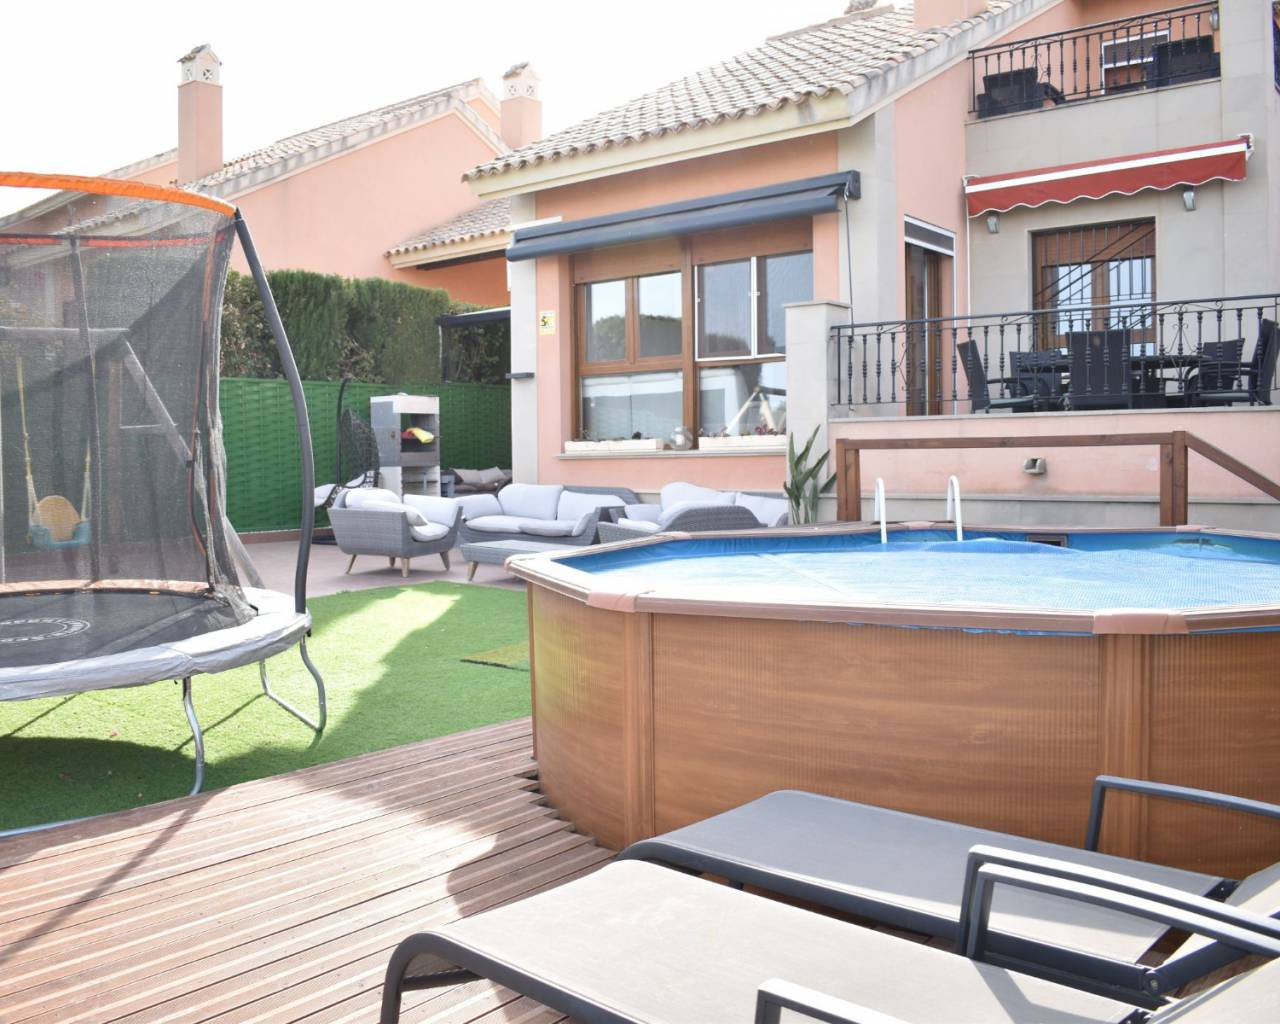 Detached Villa - Venta - Algorfa - La Finca Golf Resort